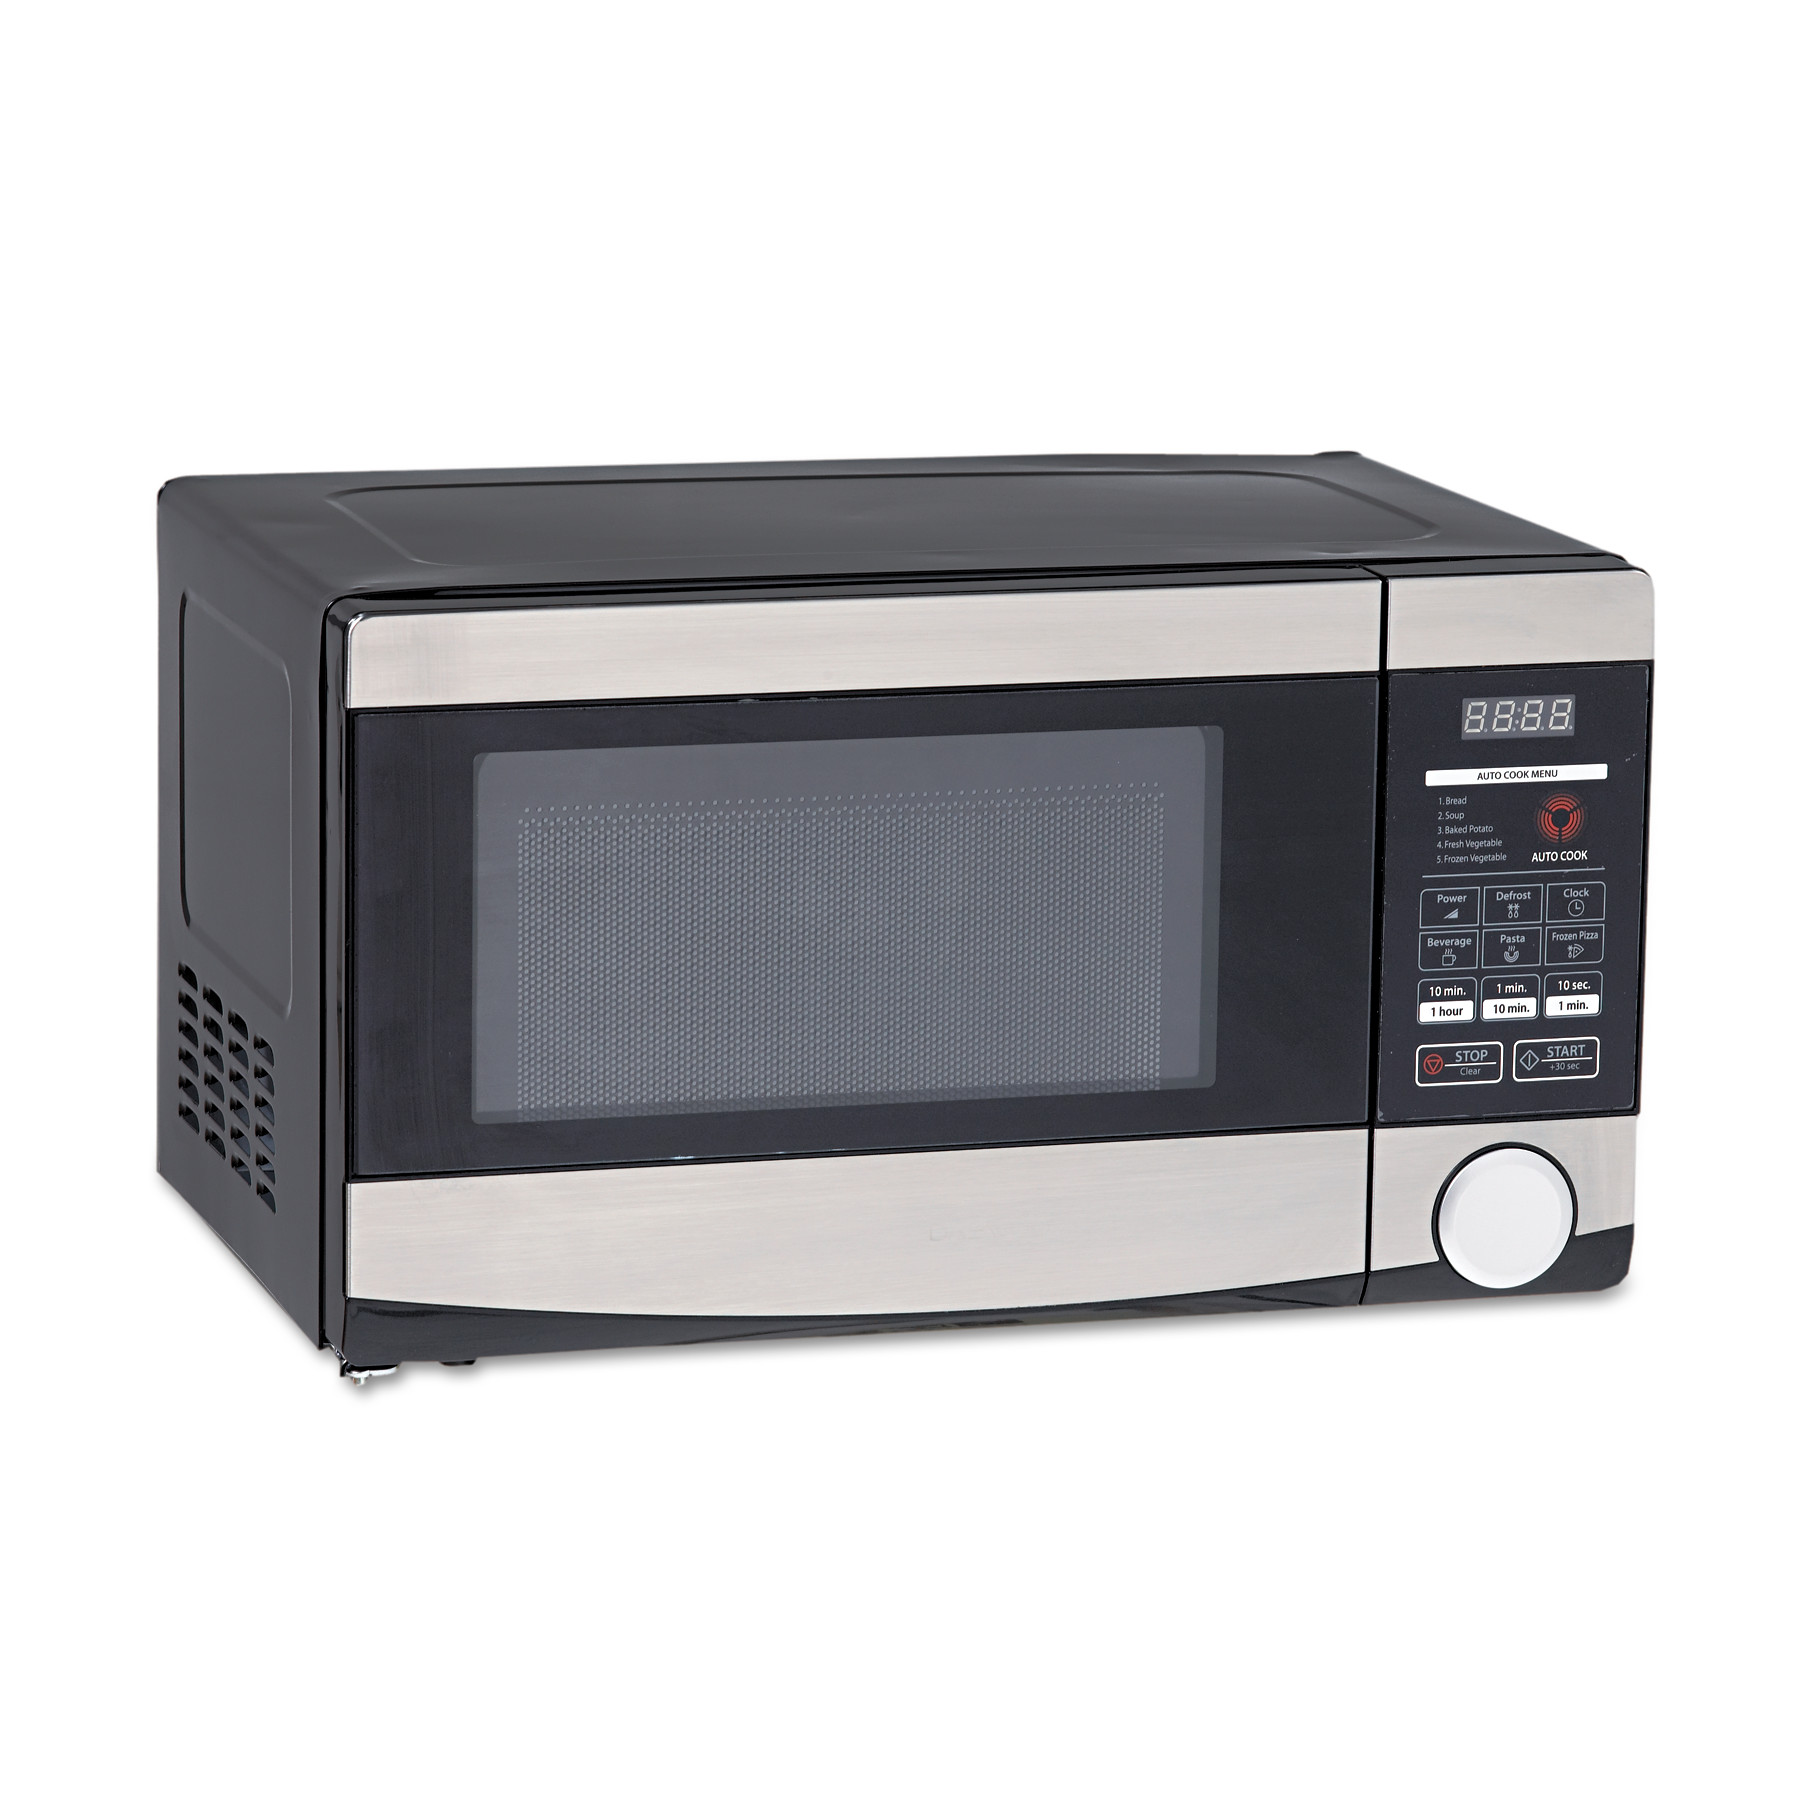 Avanti 0.7 Cu.ft Capacity Microwave Oven, 700 Watts, Stainless Steel and Black